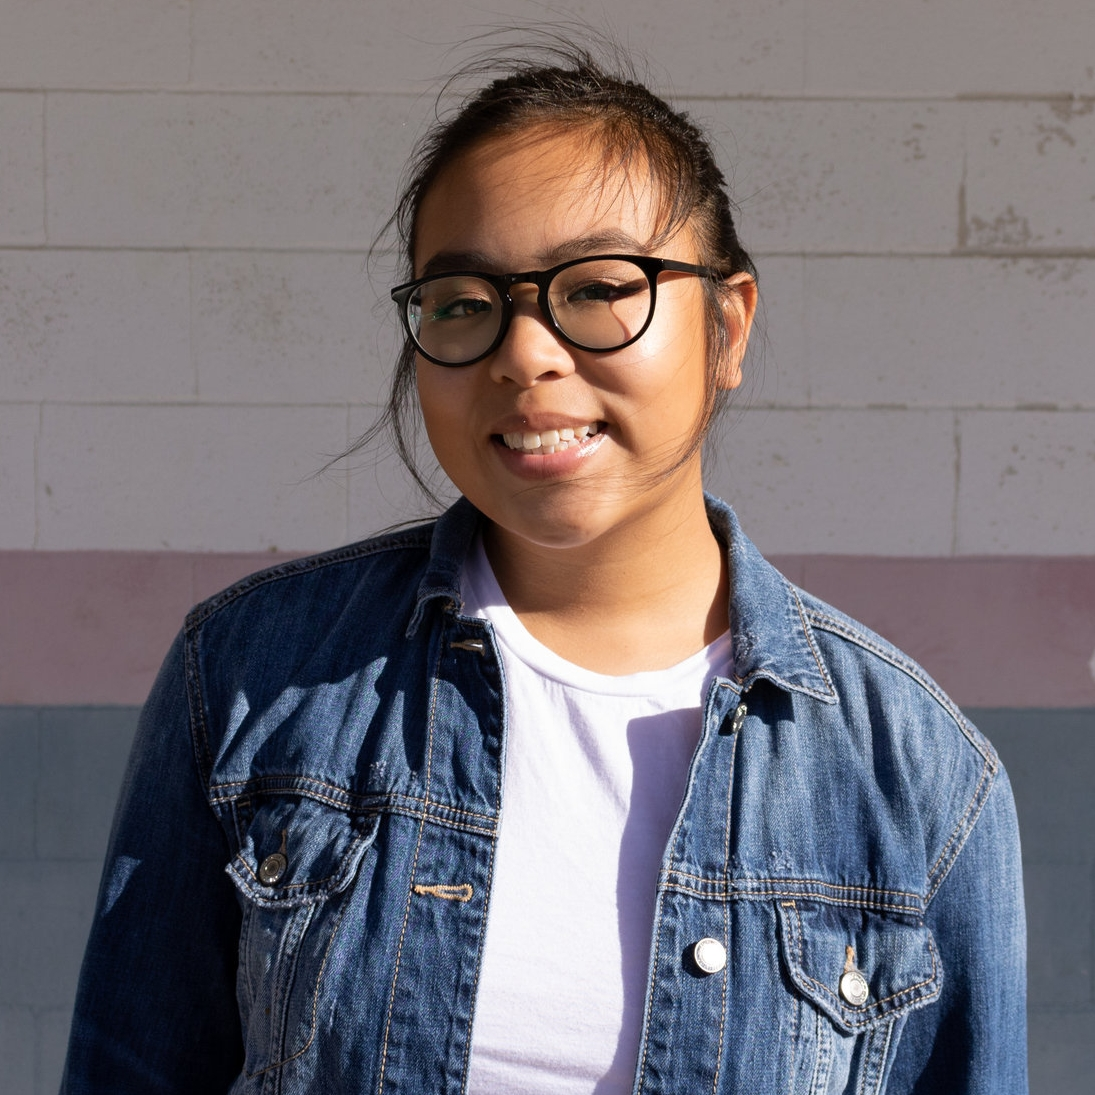 Michelle Guan - Online Editor -   Michelle is in her fourth year at UNT and is the captain of her ultimate frisbee team. She enjoys late night food, hoarding new books she'll never read, and playing board games with her friends.